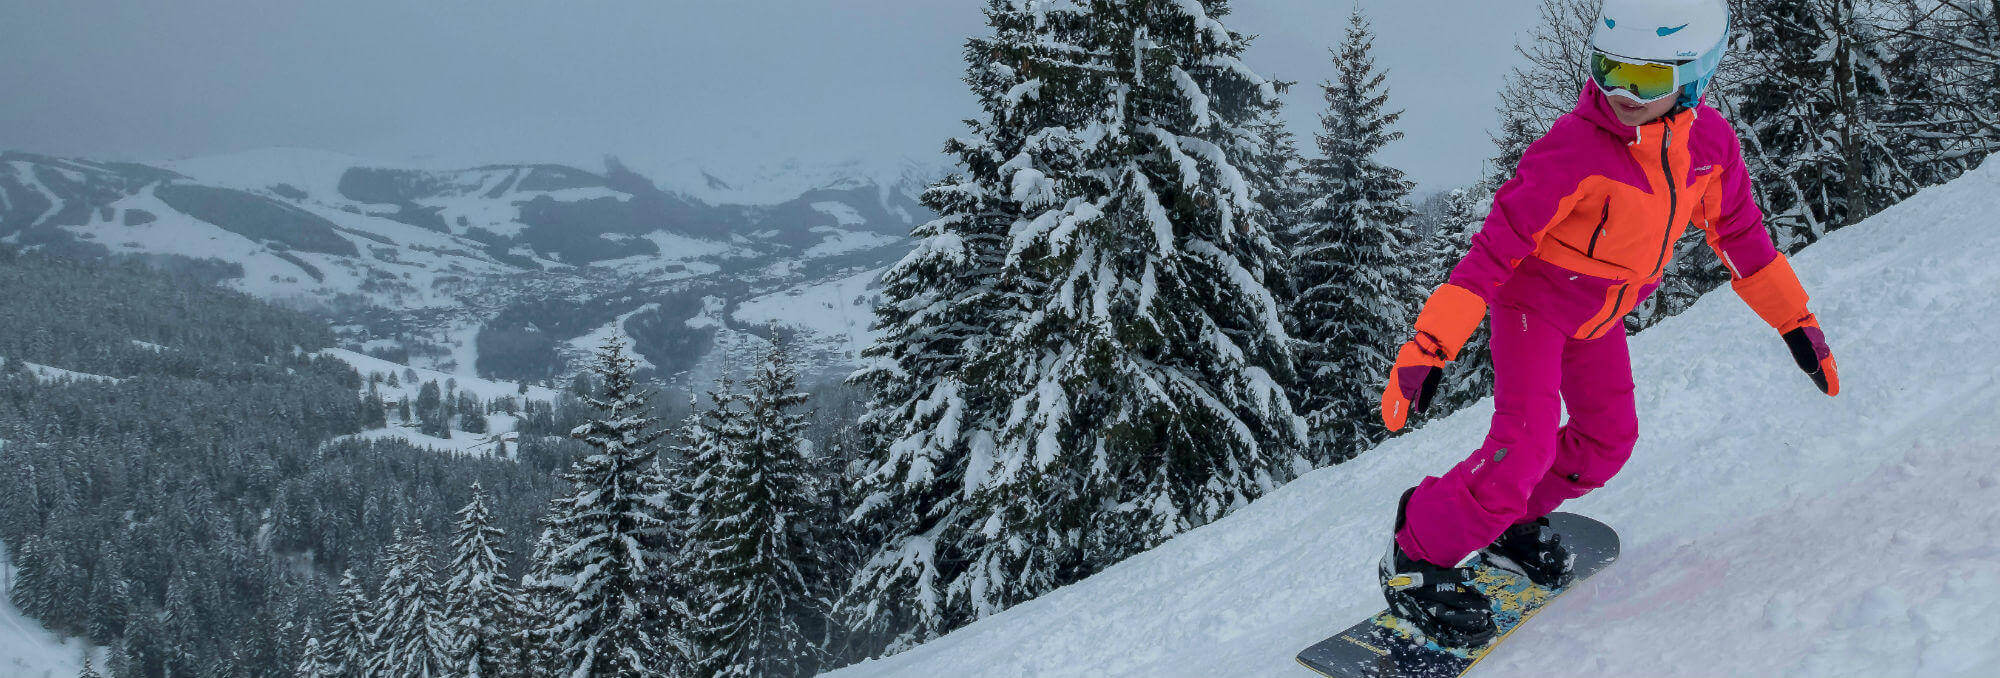 How to Choose a Children's Snowboard?